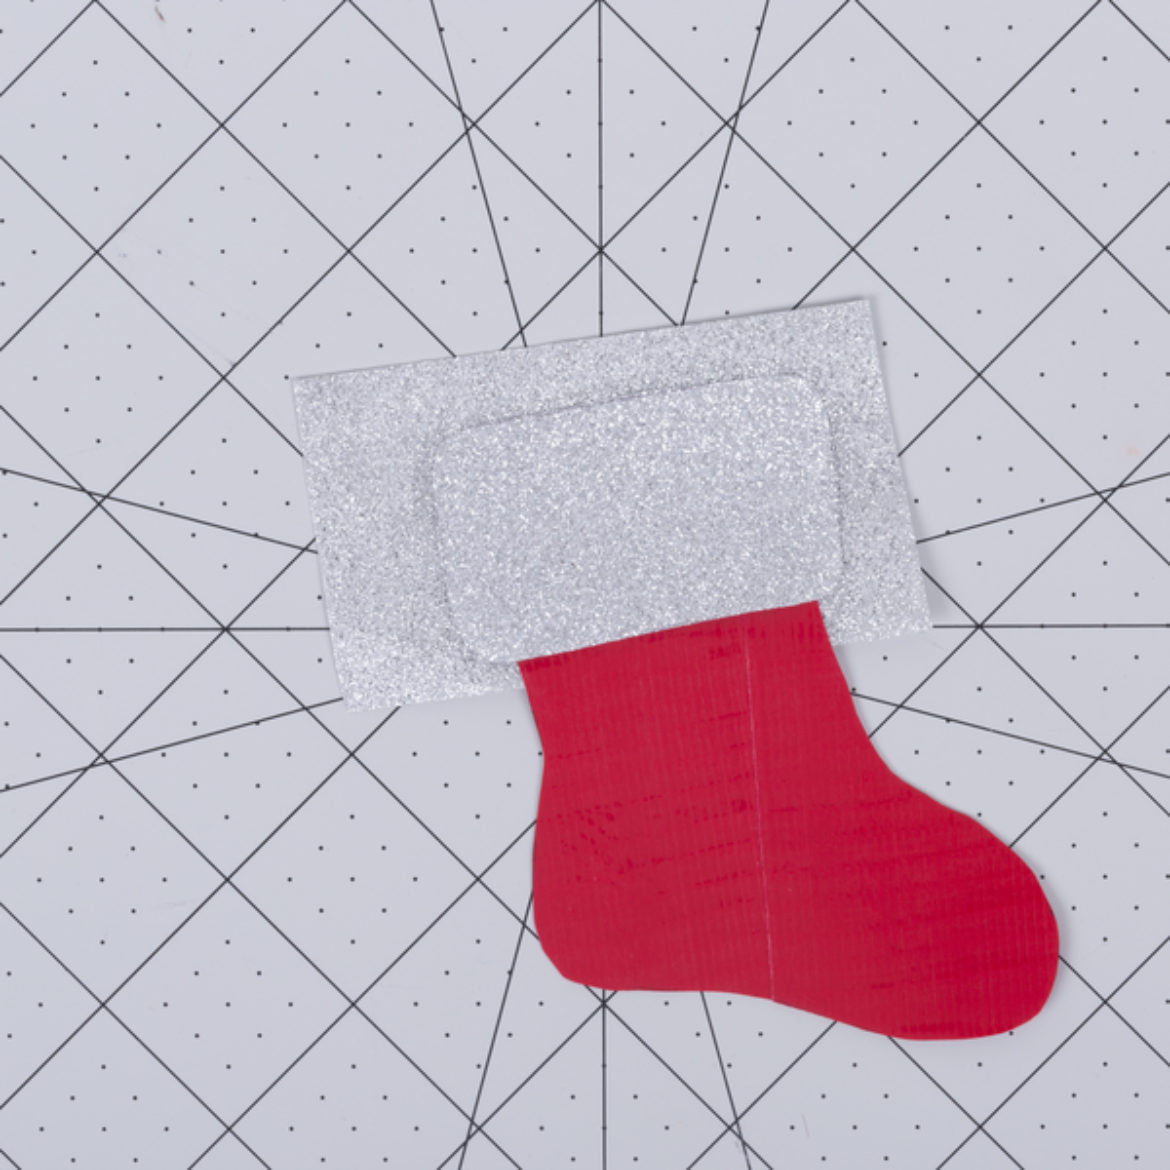 Mini Stocking Ornament Step 5 Copy